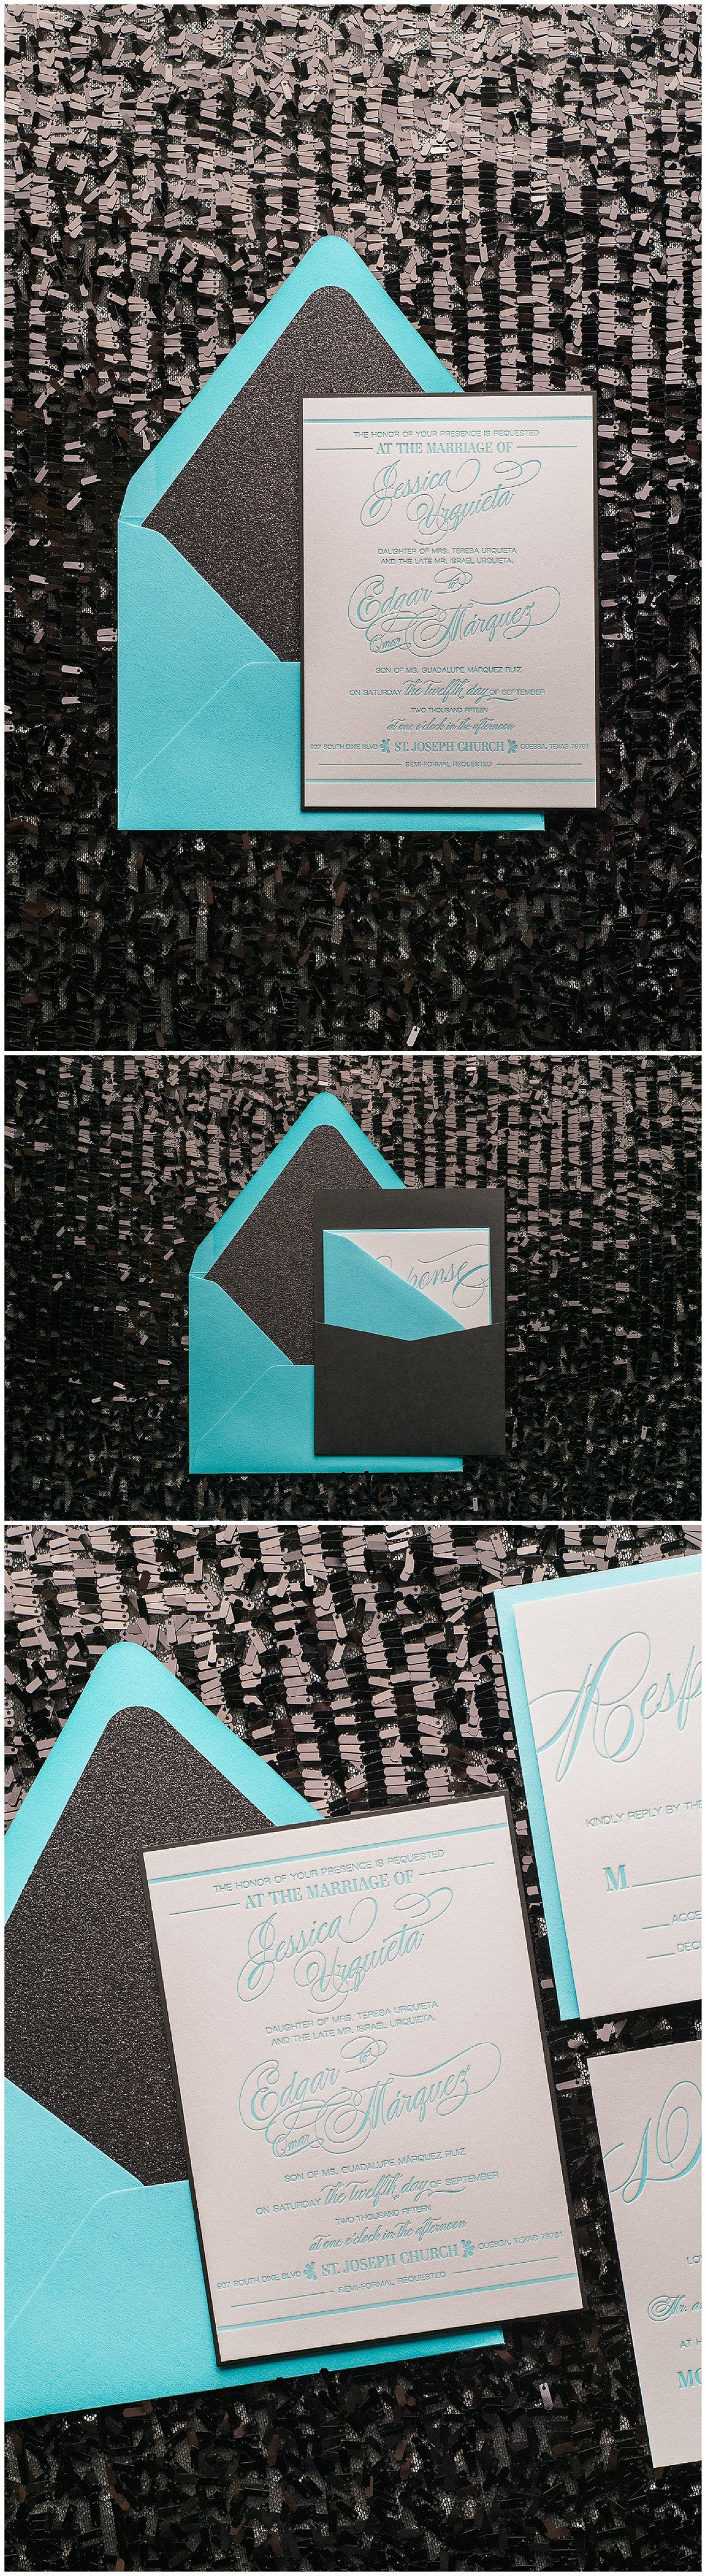 Wedding Invitation Trends, Turquoise and Black, Turquoise Letterpress, Black Glitter, Gianna Suite, Panel Pocket Invitations, Just Invite Me